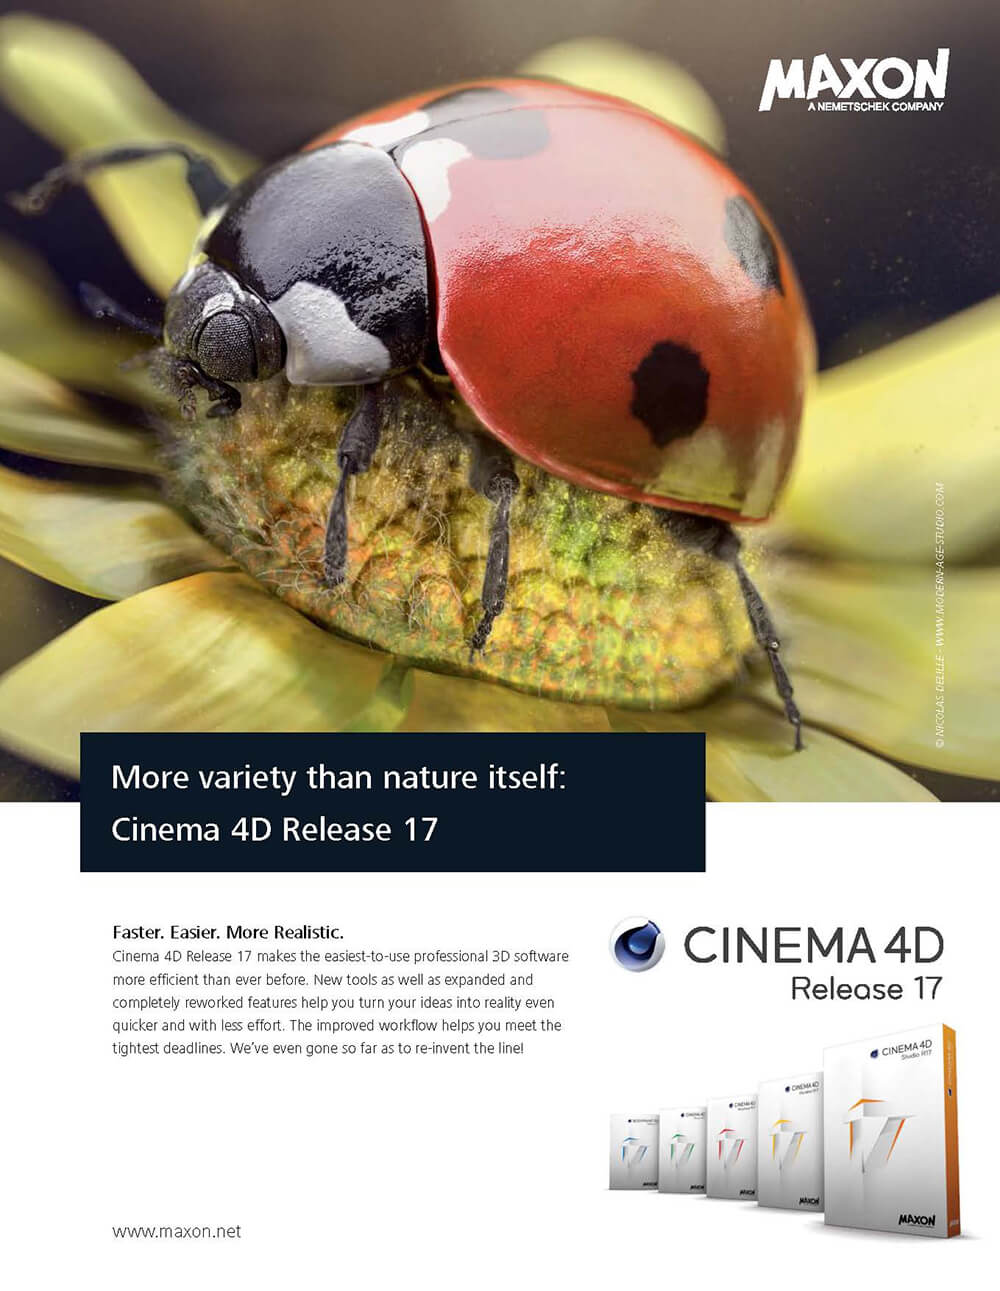 Maxon ad with the illustration Ladybug Journey